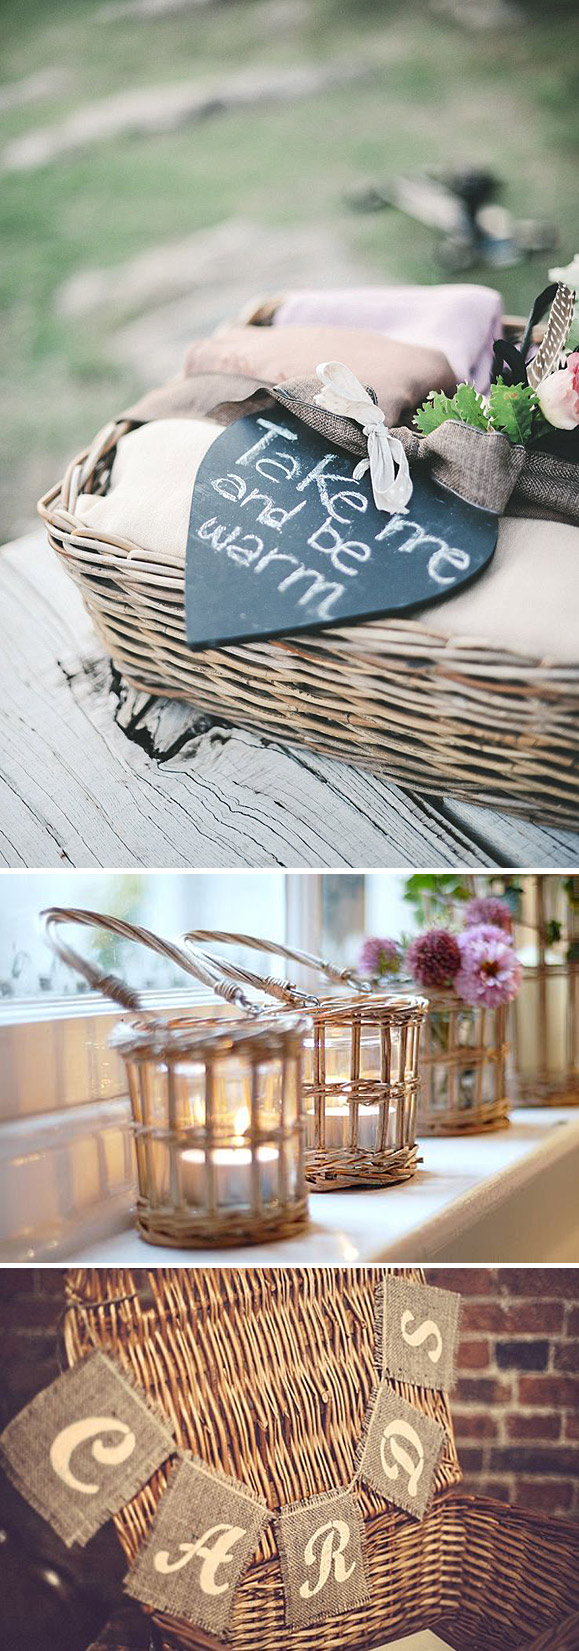 Cestas - ideas para decorar bodas y eventos en el campo